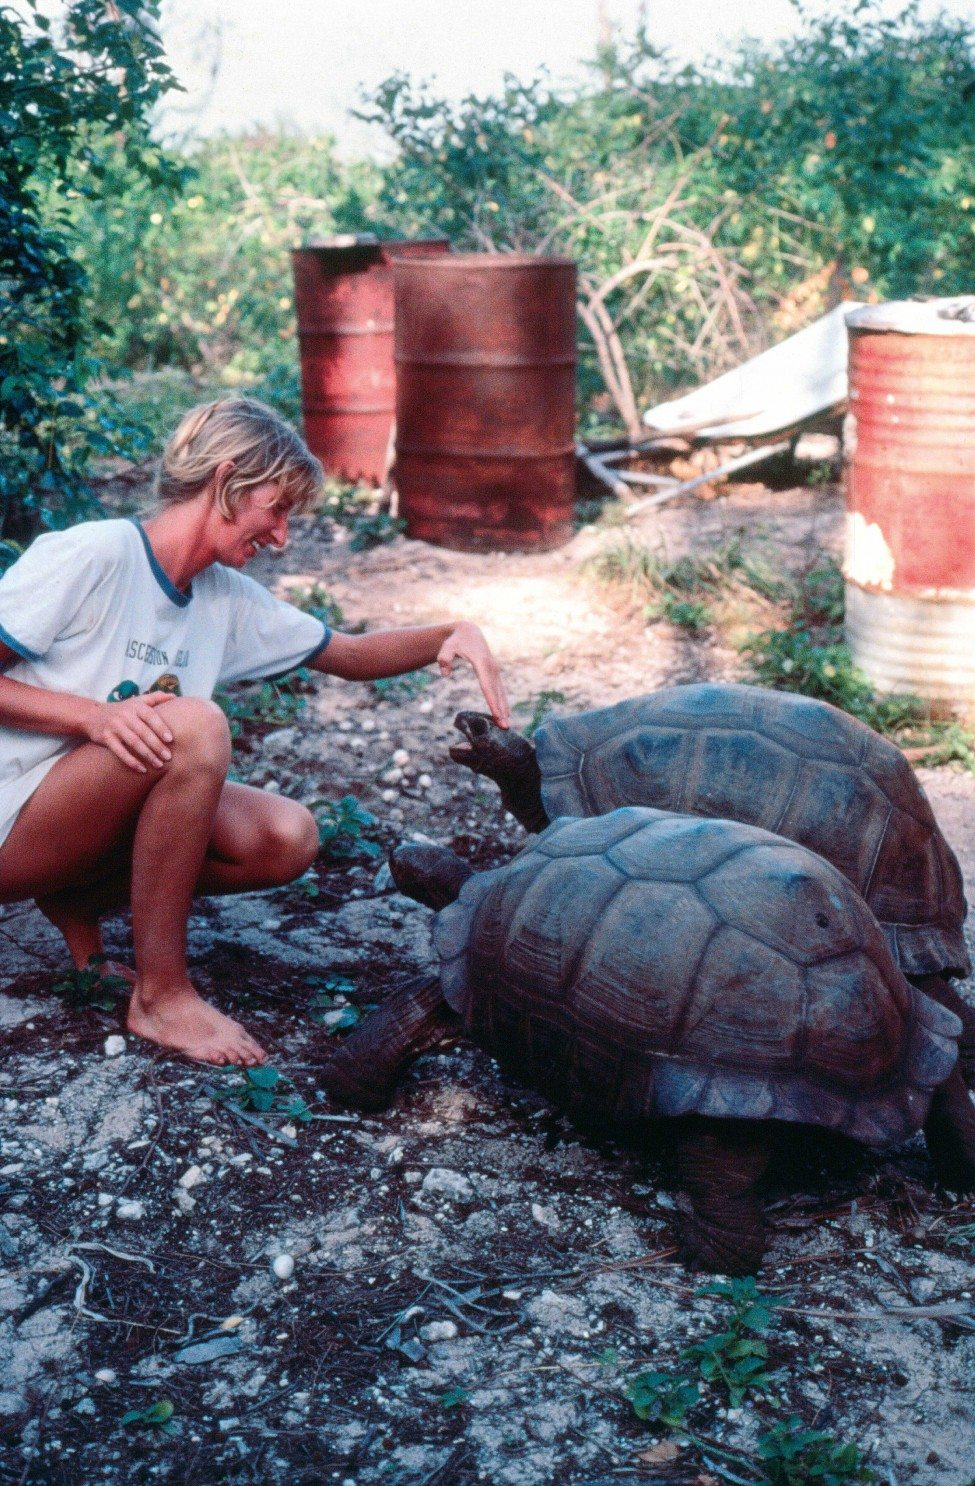 Jeanne Mortimer with giant tortoises on Aldabra Atoll in the Seychelles in 1982, soon after she arrived in the country to help assess the status of its sea turtle populations.<br /> Photo by Jeanne Mortimer